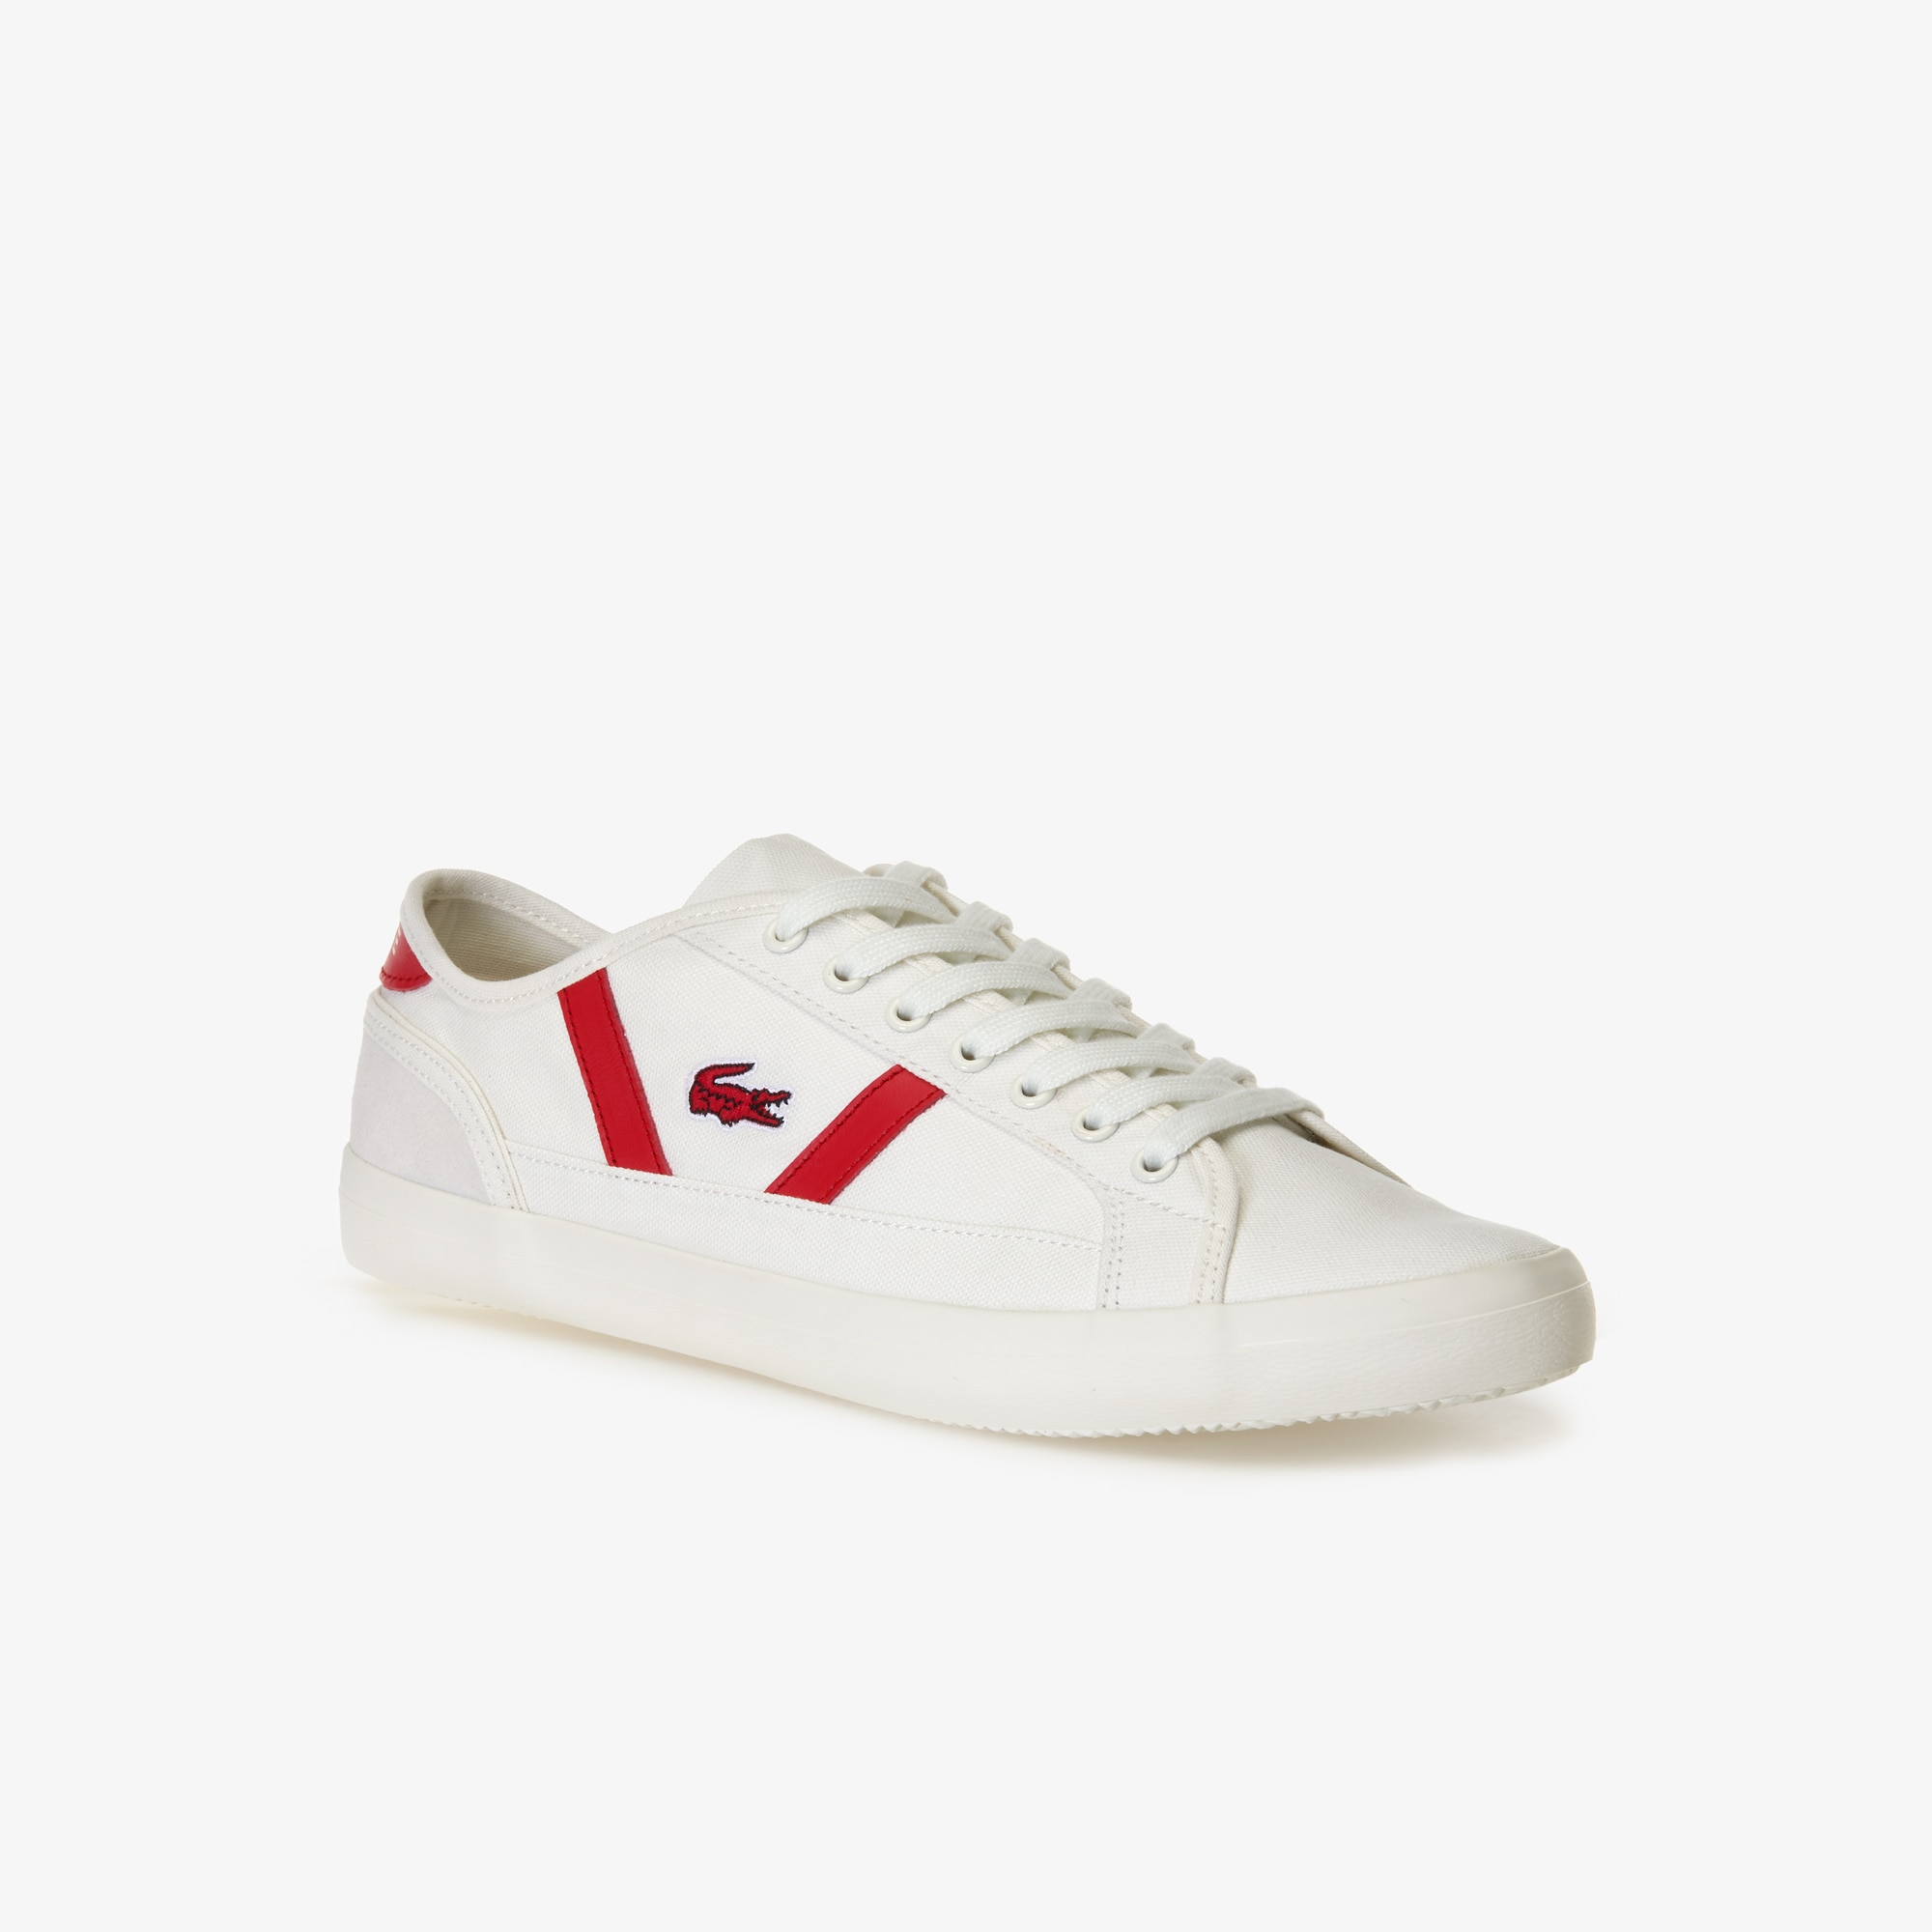 Men's Sideline Canvas and Leather Trainers